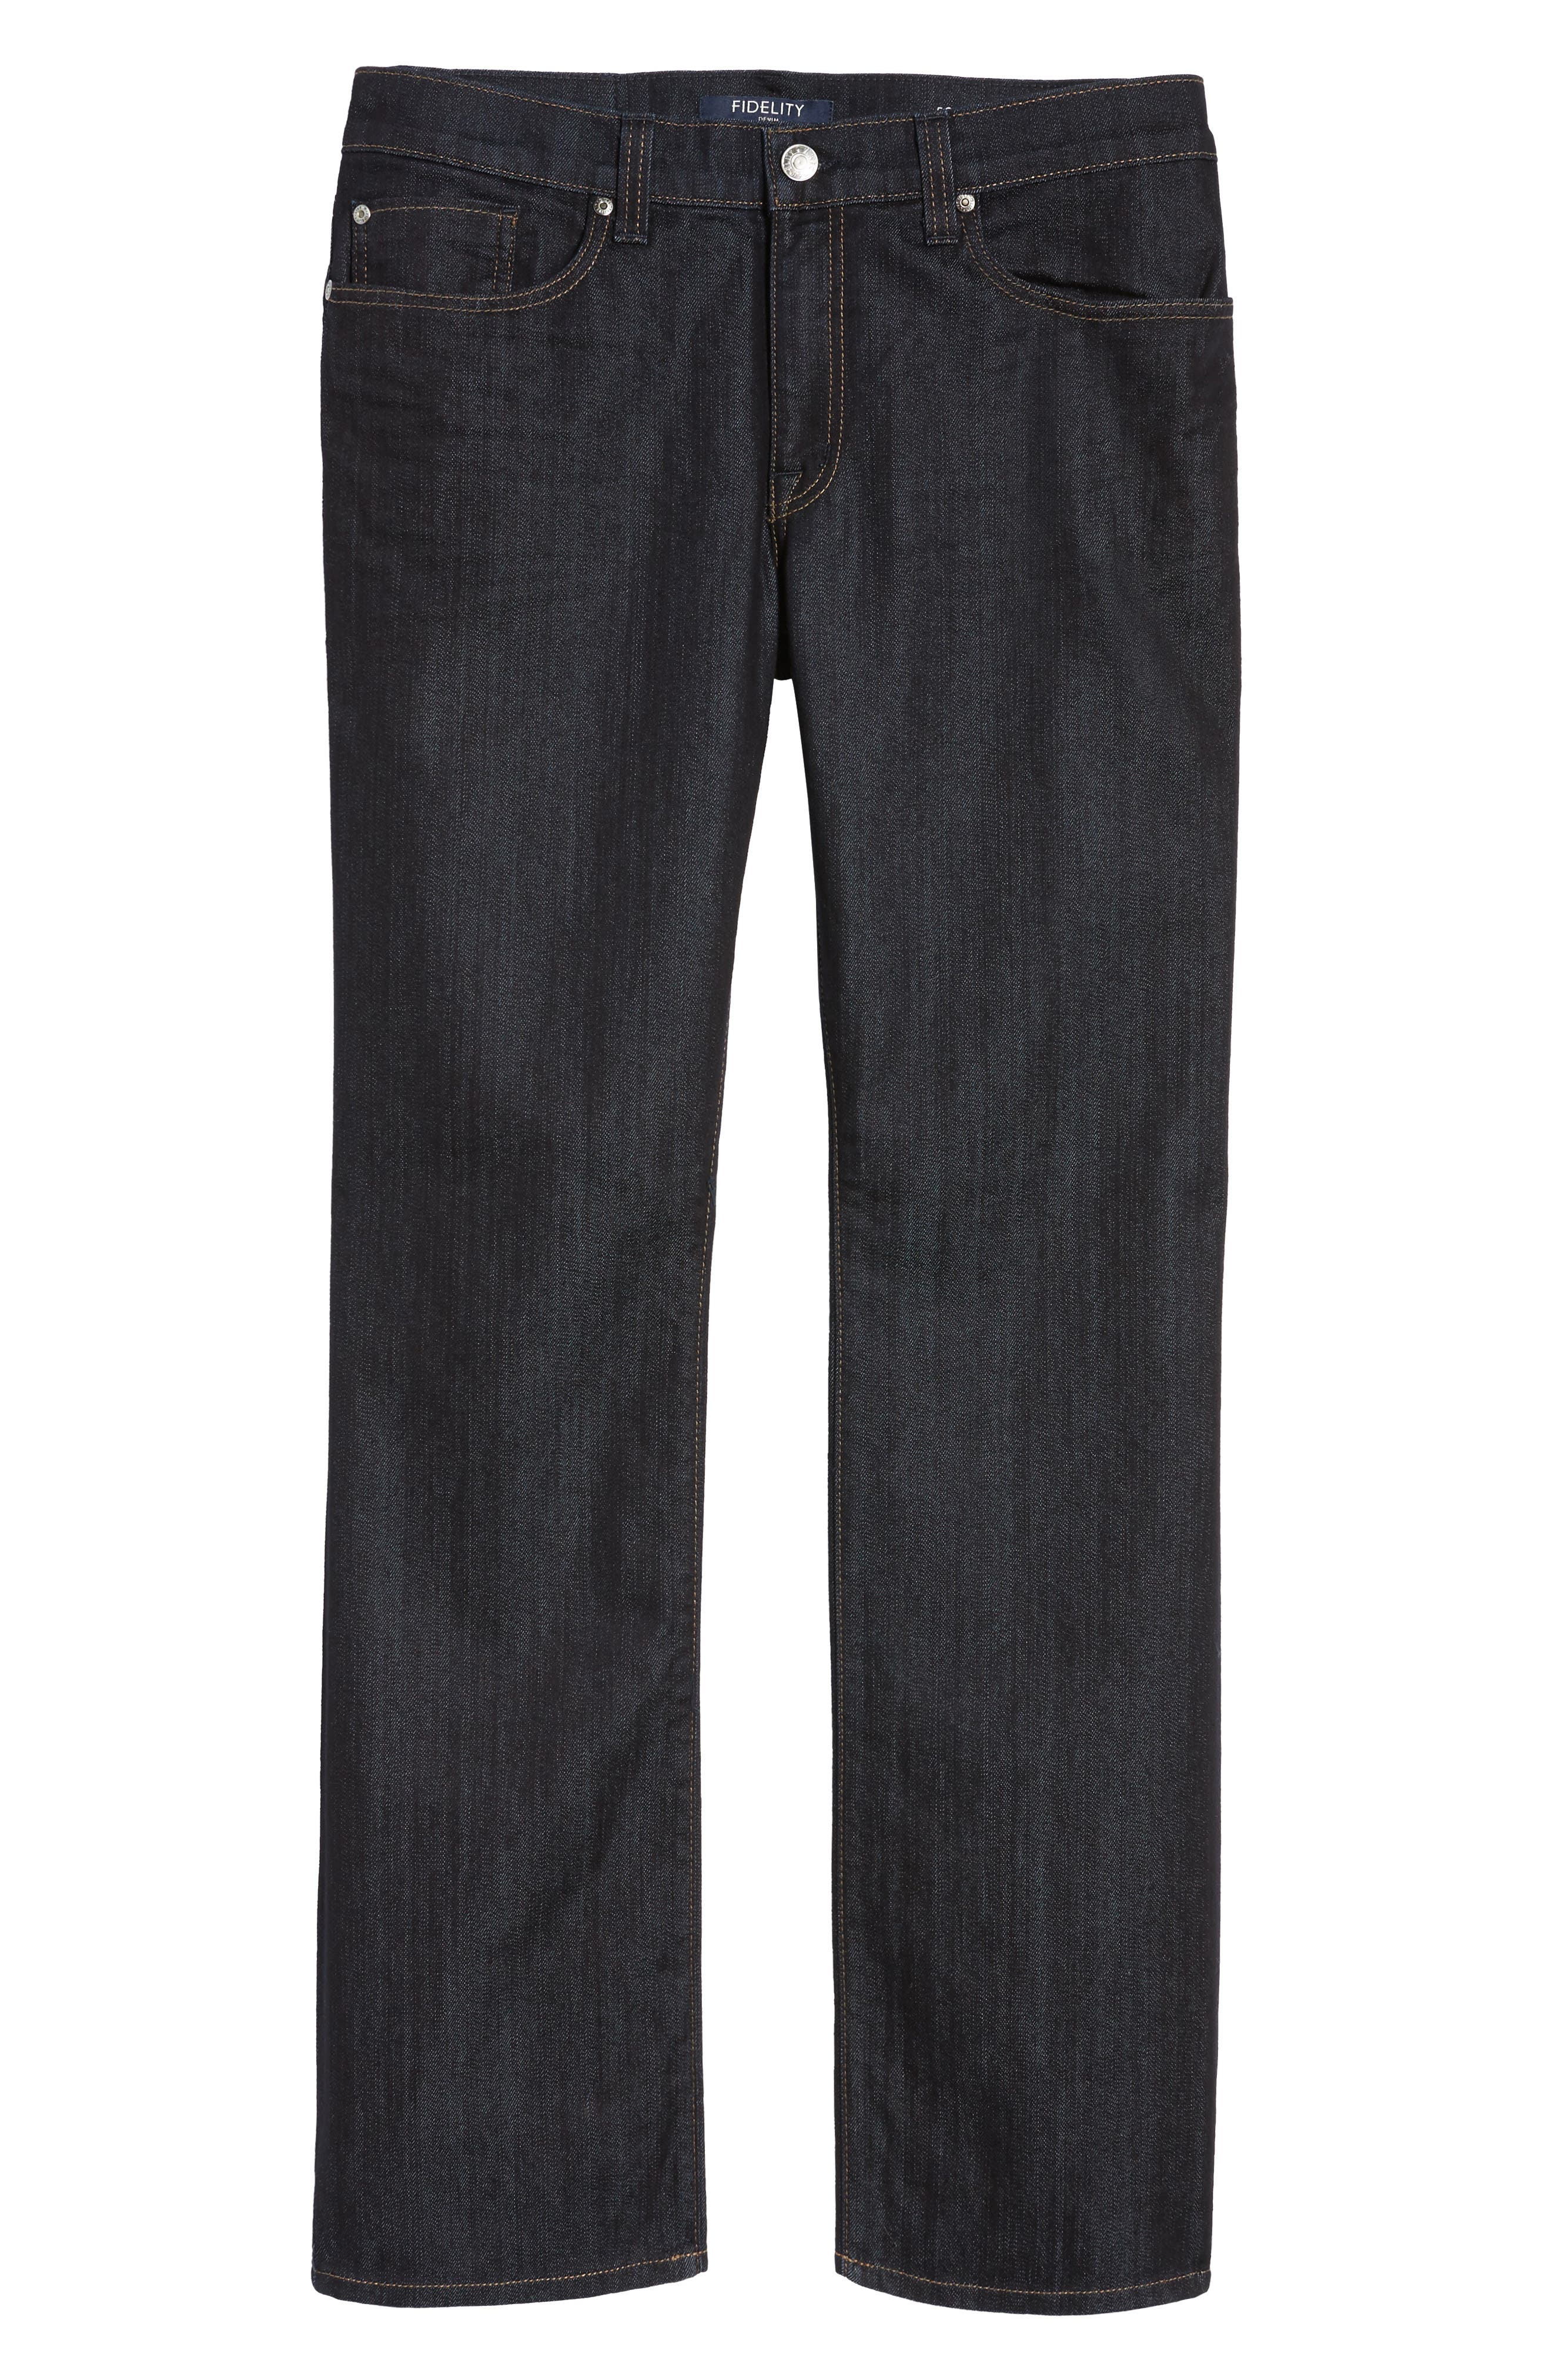 50-11 Relaxed Fit Jeans,                             Main thumbnail 1, color,                             REVOLUTION RINSE